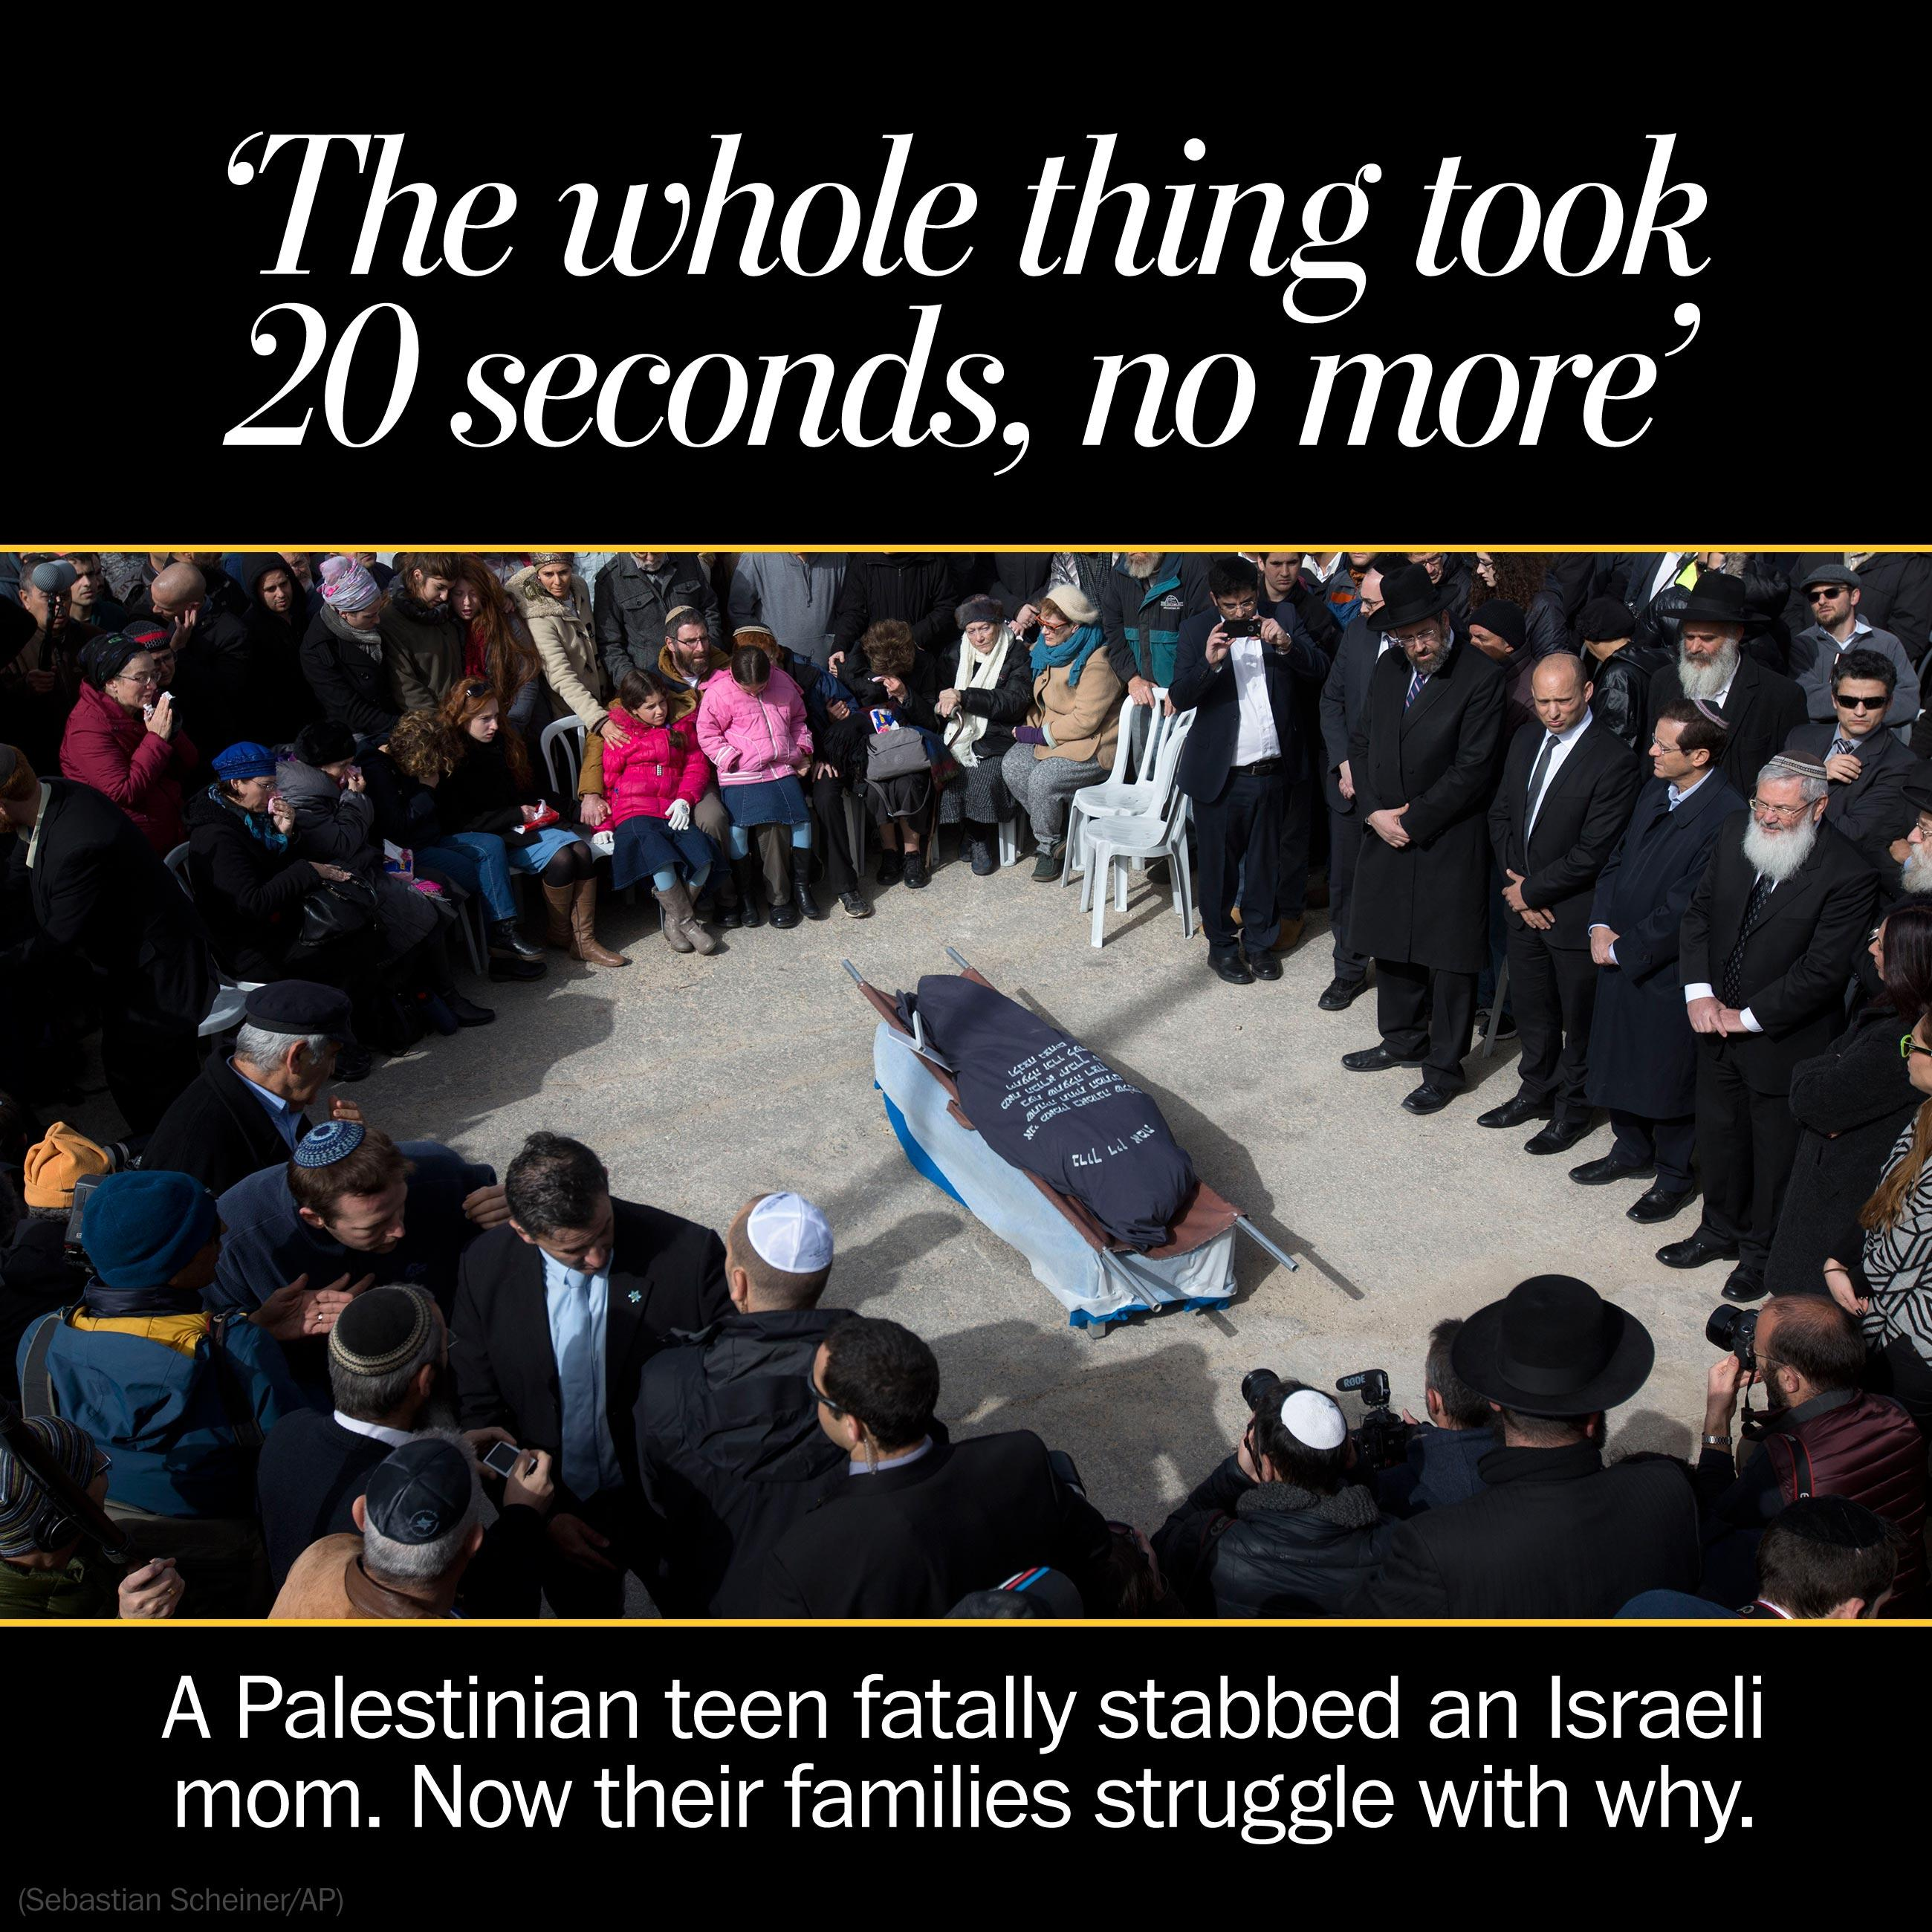 A Palestinian teen killed an Israeli mom. Now their families struggle with why.